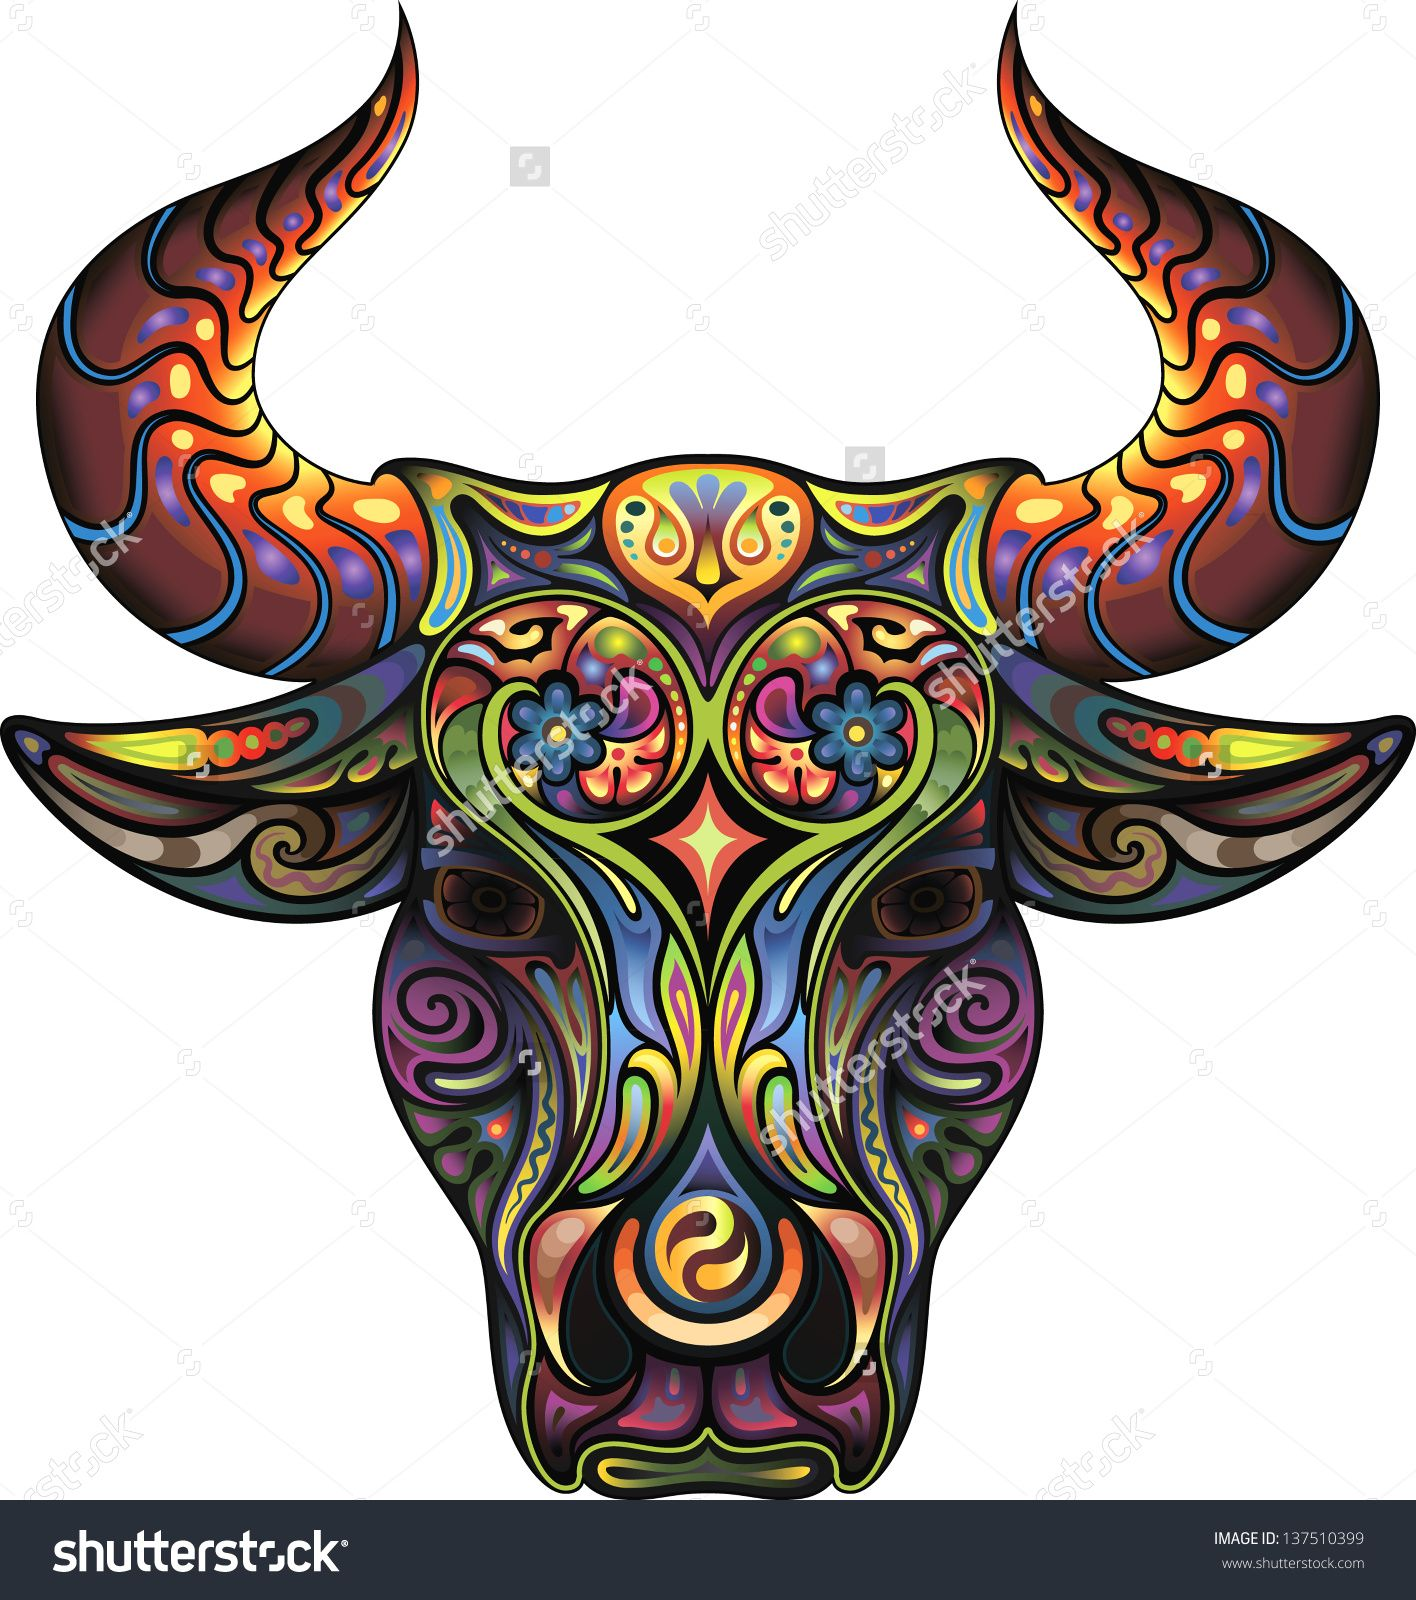 Pics photos taurus tattoos bull tattoo art - Silhouette Of A Head Of A Bull Collected From Plant Ornament Variegated Colors By Cupoftea Via Shutterstock Beautiful Taurus Pic